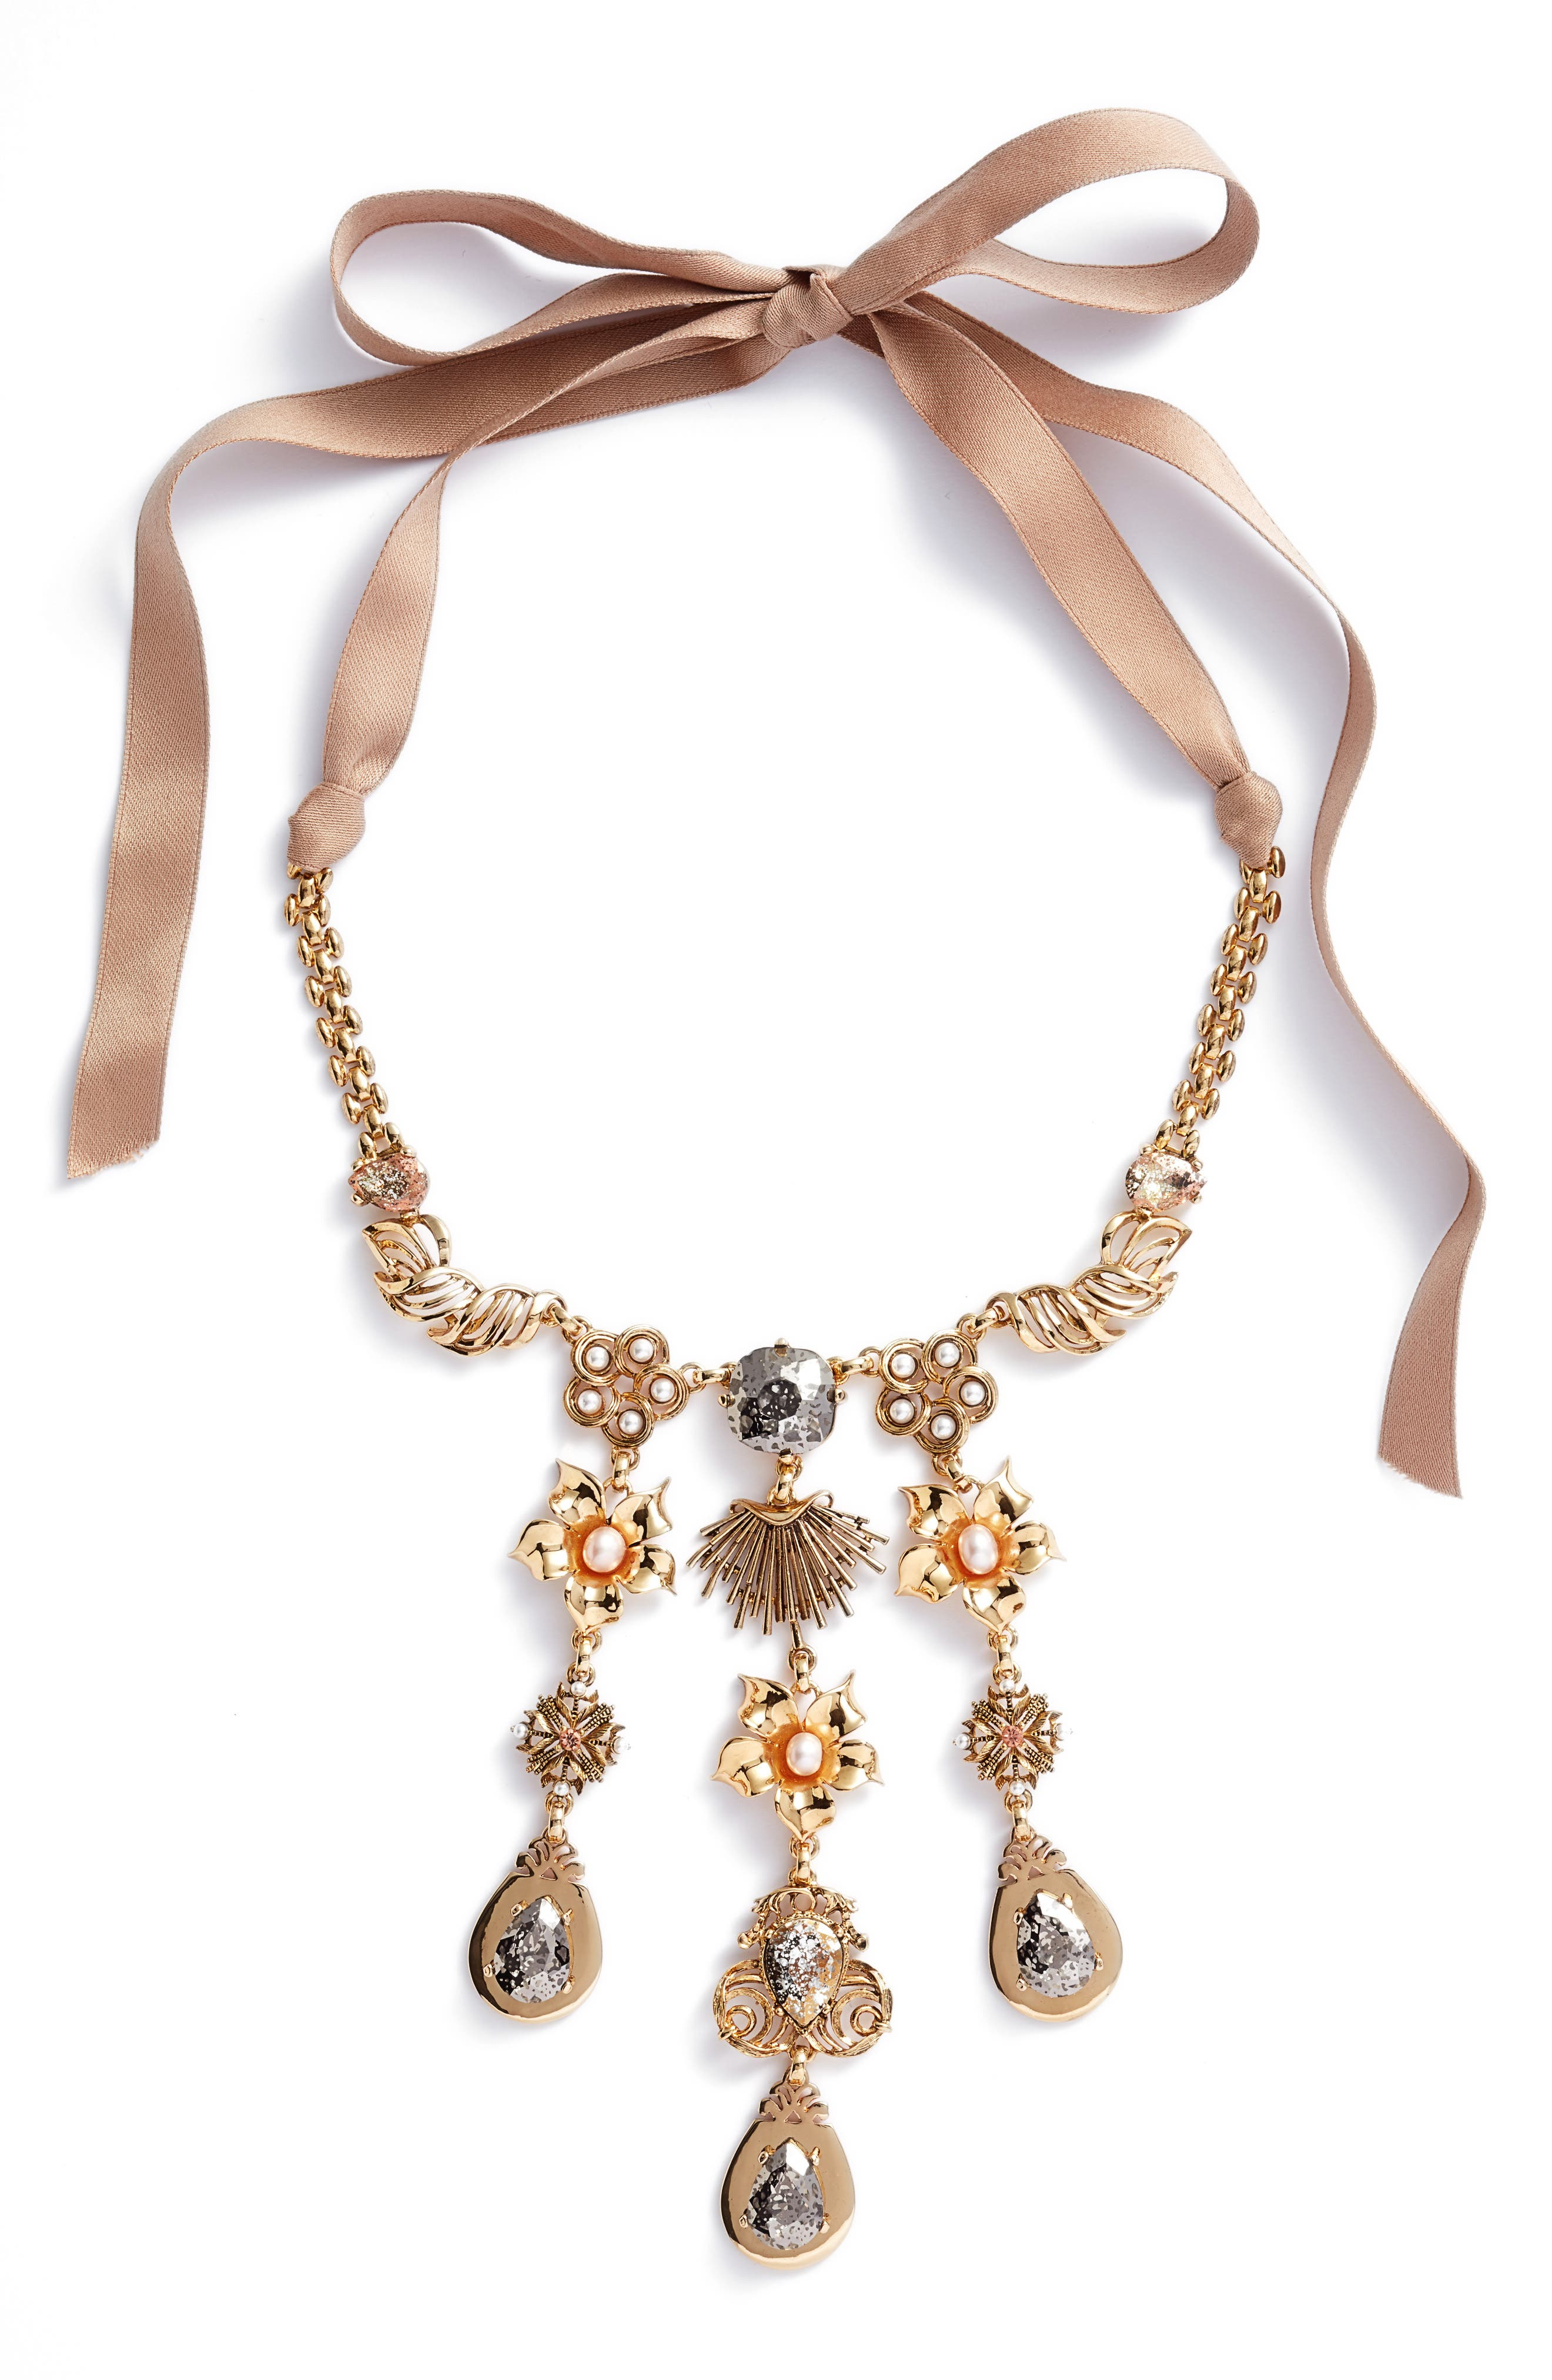 Crystal & Freshwater Pearl Collar Necklace,                             Main thumbnail 1, color,                             GOLD